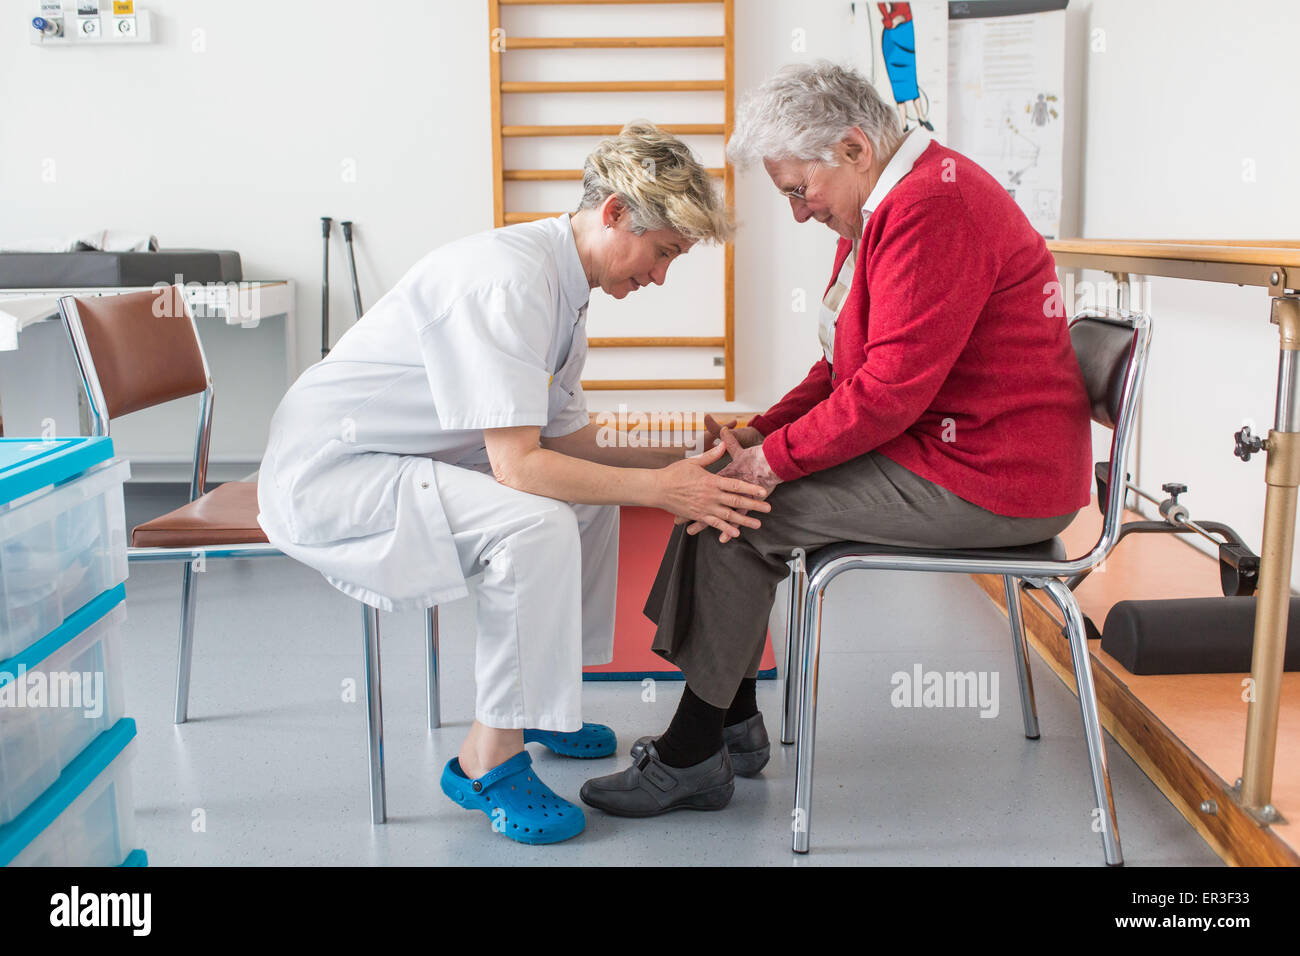 Osteoporosis patient reached in muscle building session with a physiotherapist, Bordeaux hospital, France. - Stock Image